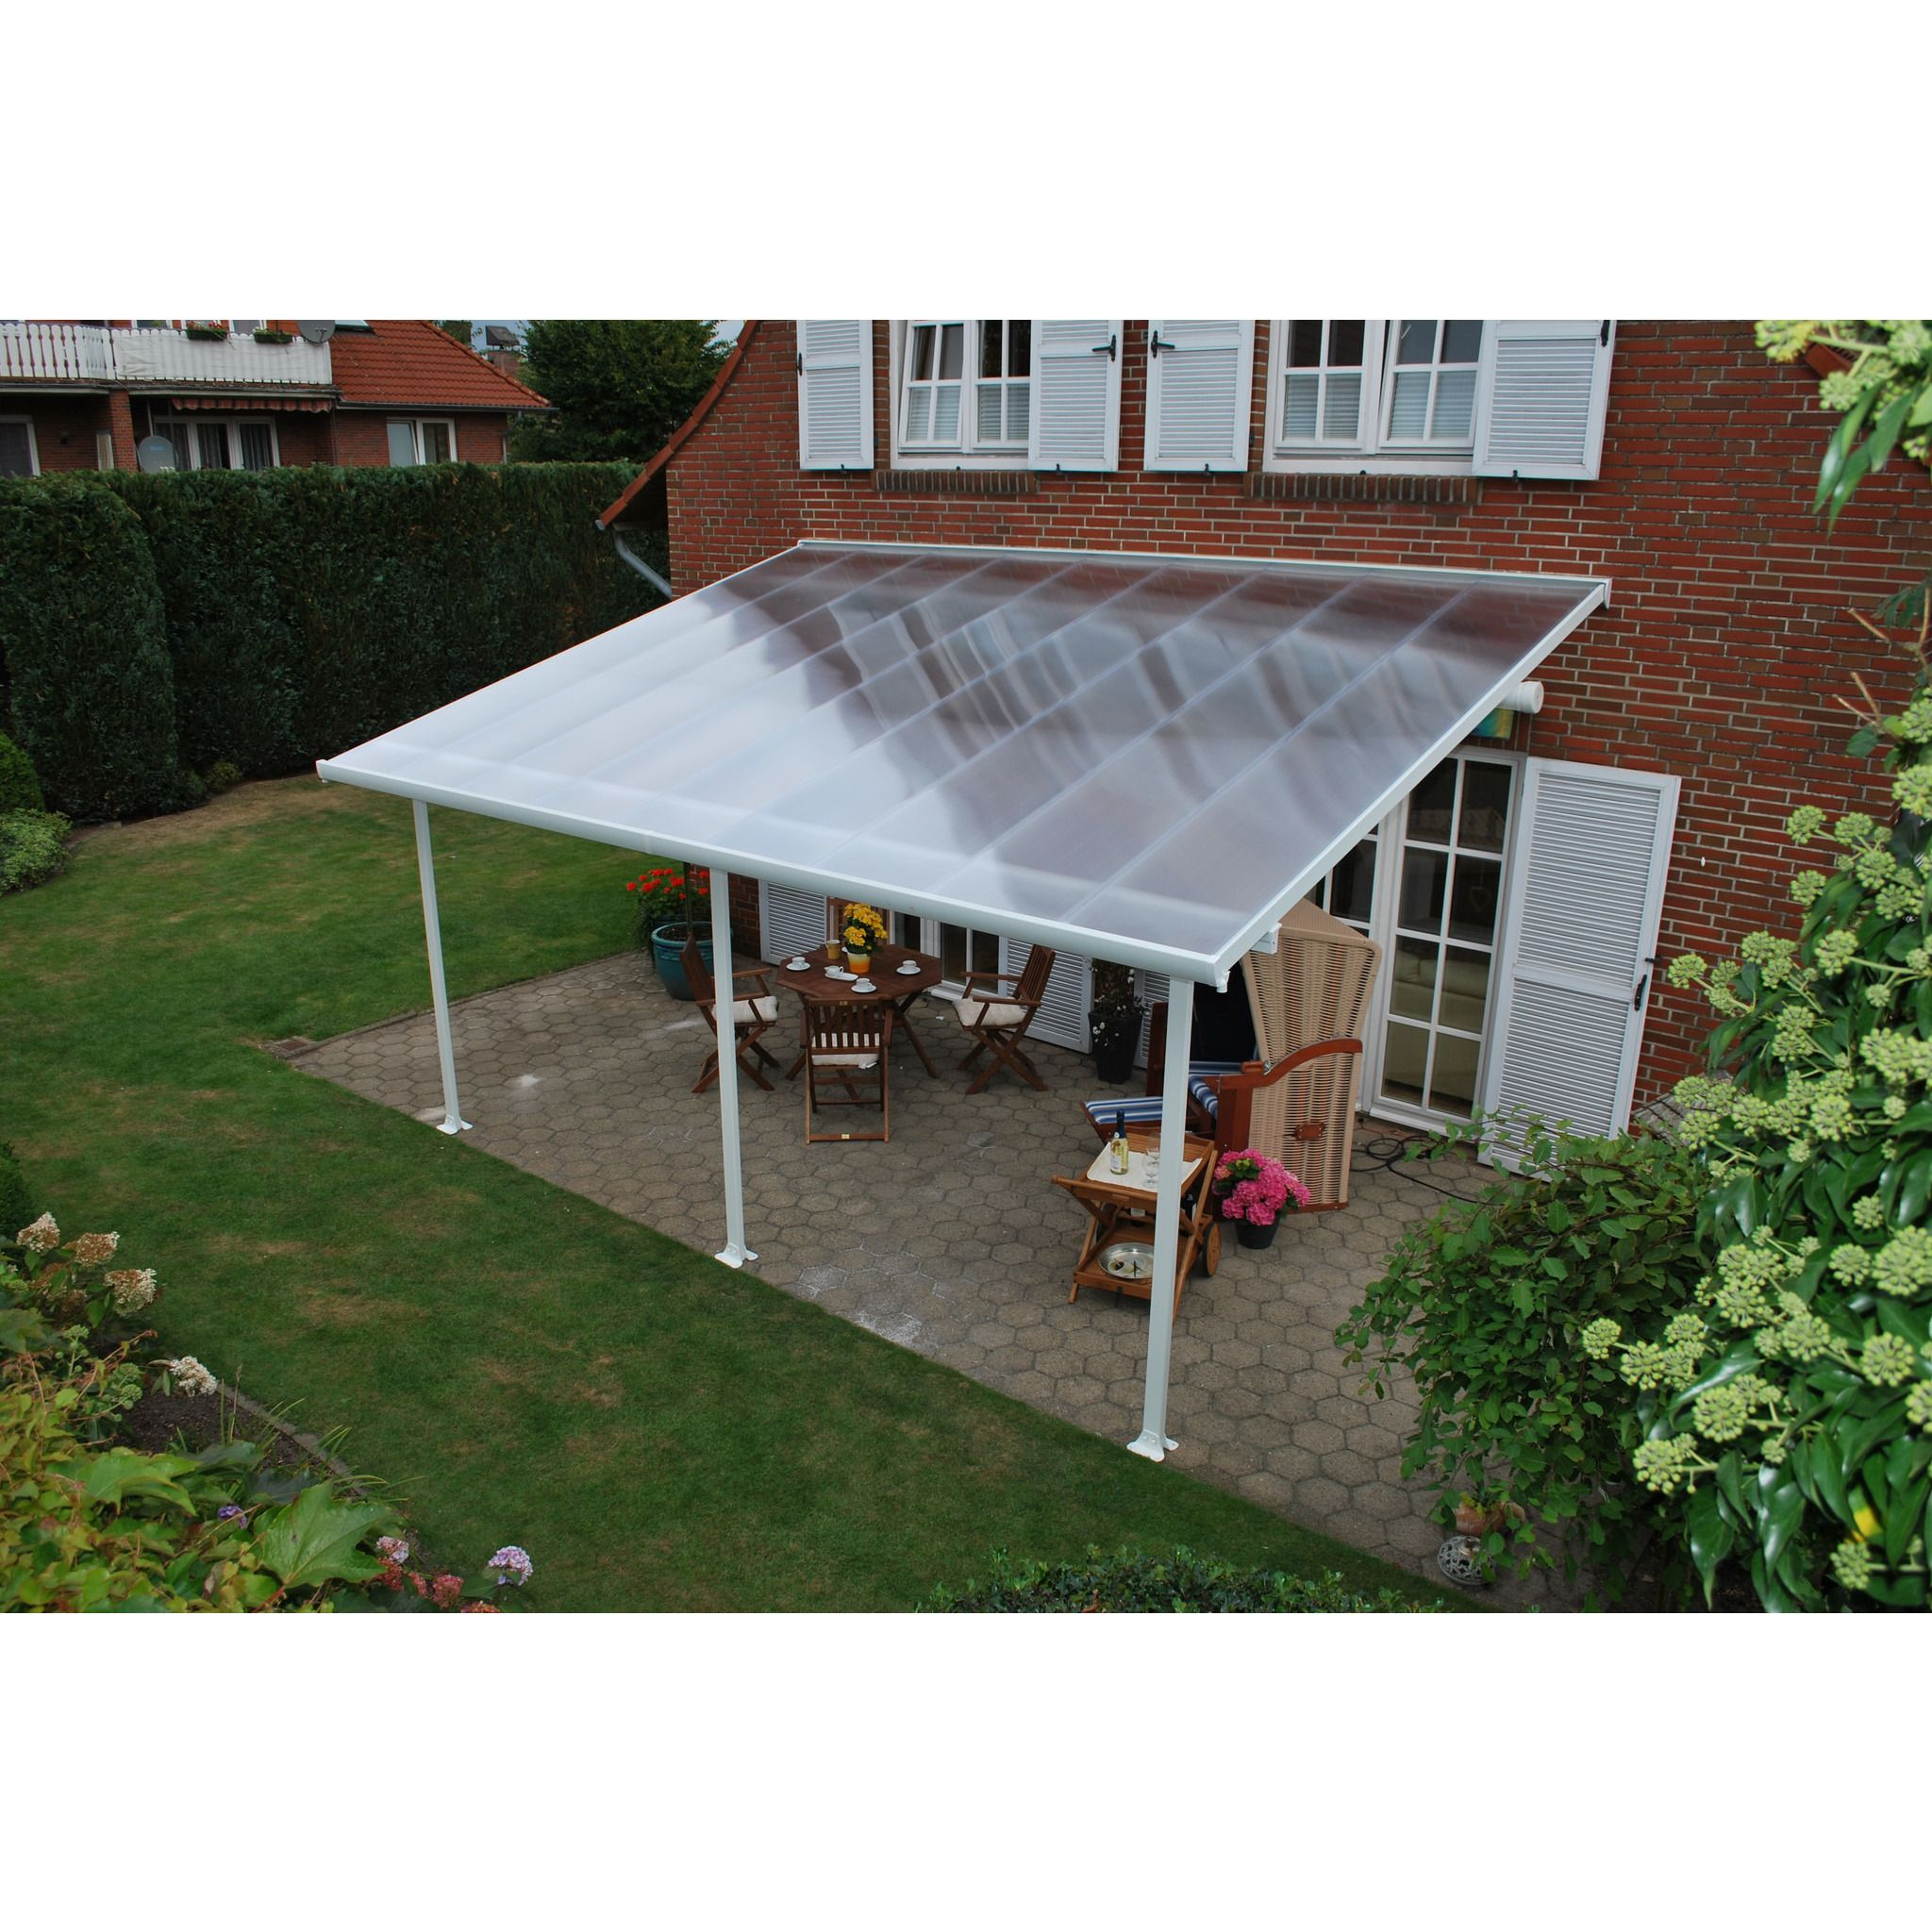 grande clear awning gr cl patio awnings s cover carports palram sale grey canada panels joya frame for door patiocover